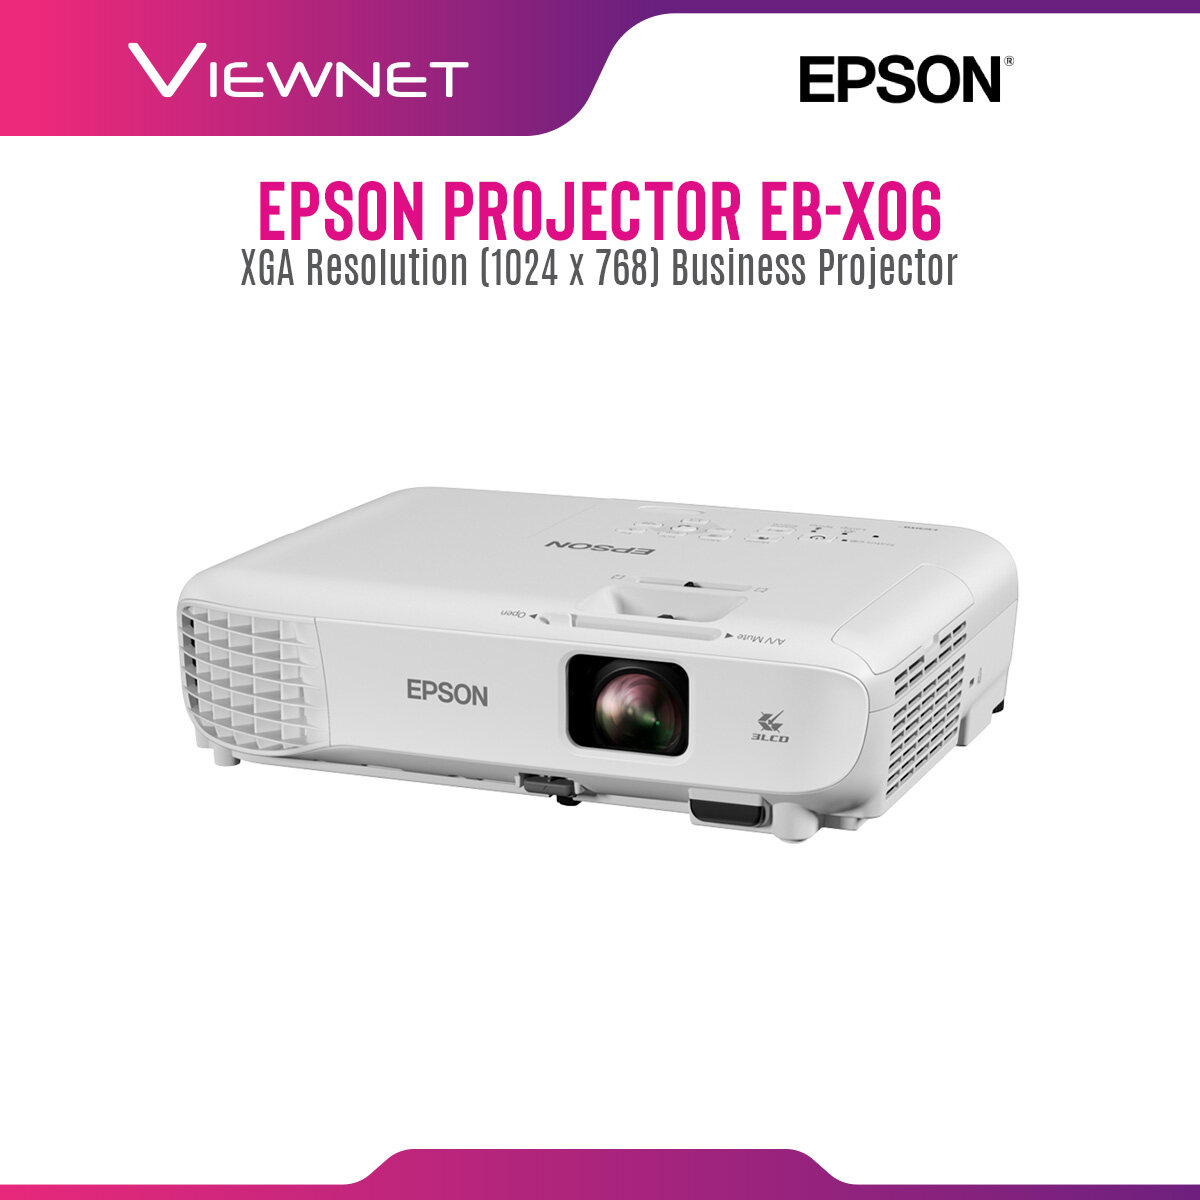 Epson Projector EB-X06 with XGA Resolution (1024 x 768), 3600 Lumens, 12000 Hours Lamp Life in Eco Mode